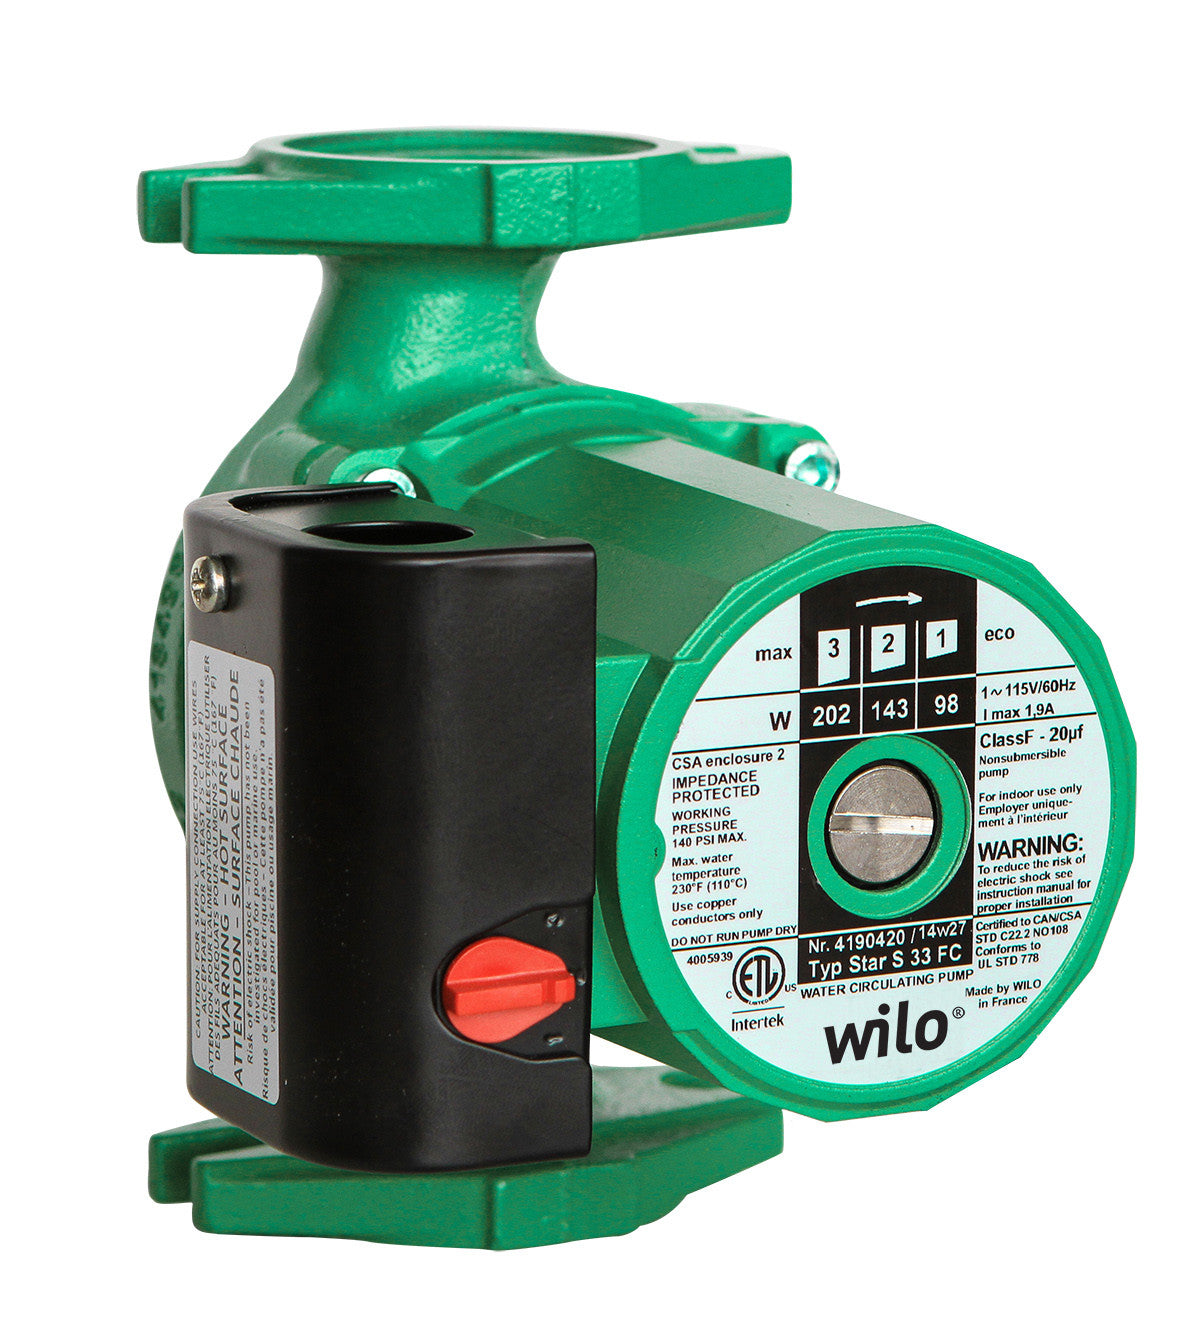 WILO 2760311 Star S 33 FC Cast Iron Three Speed Circulator Pump